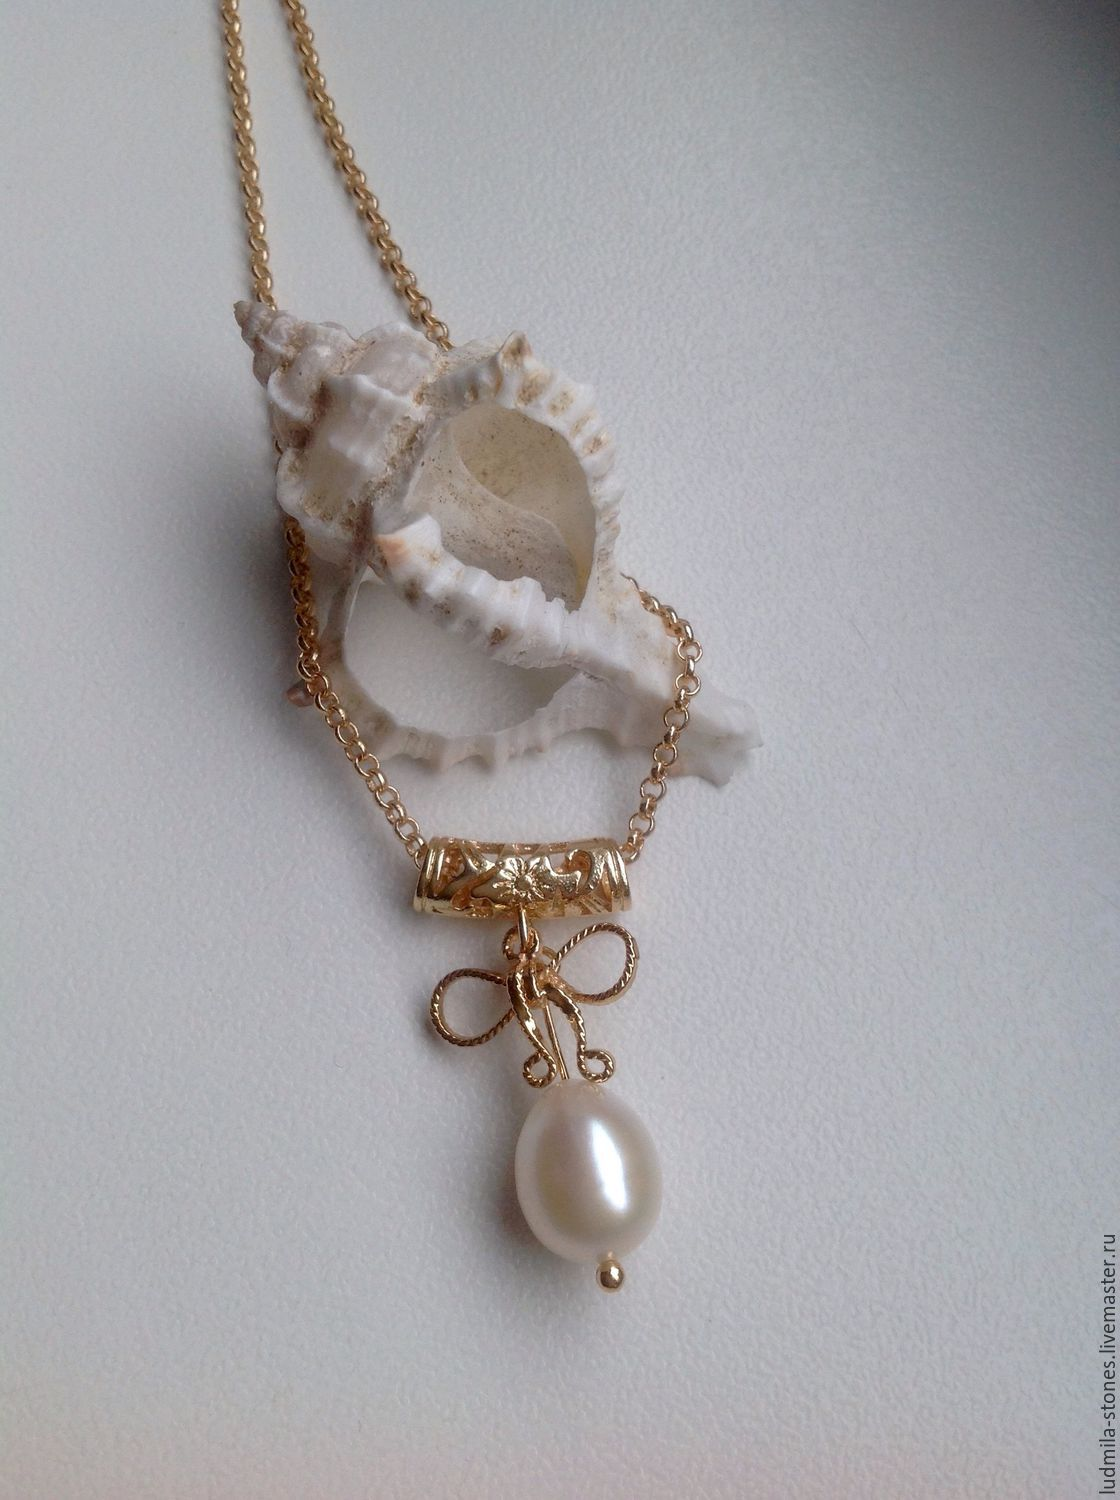 Gold plated chain with a pendant 'Rusalkina teardrop', Pendants, Moscow,  Фото №1